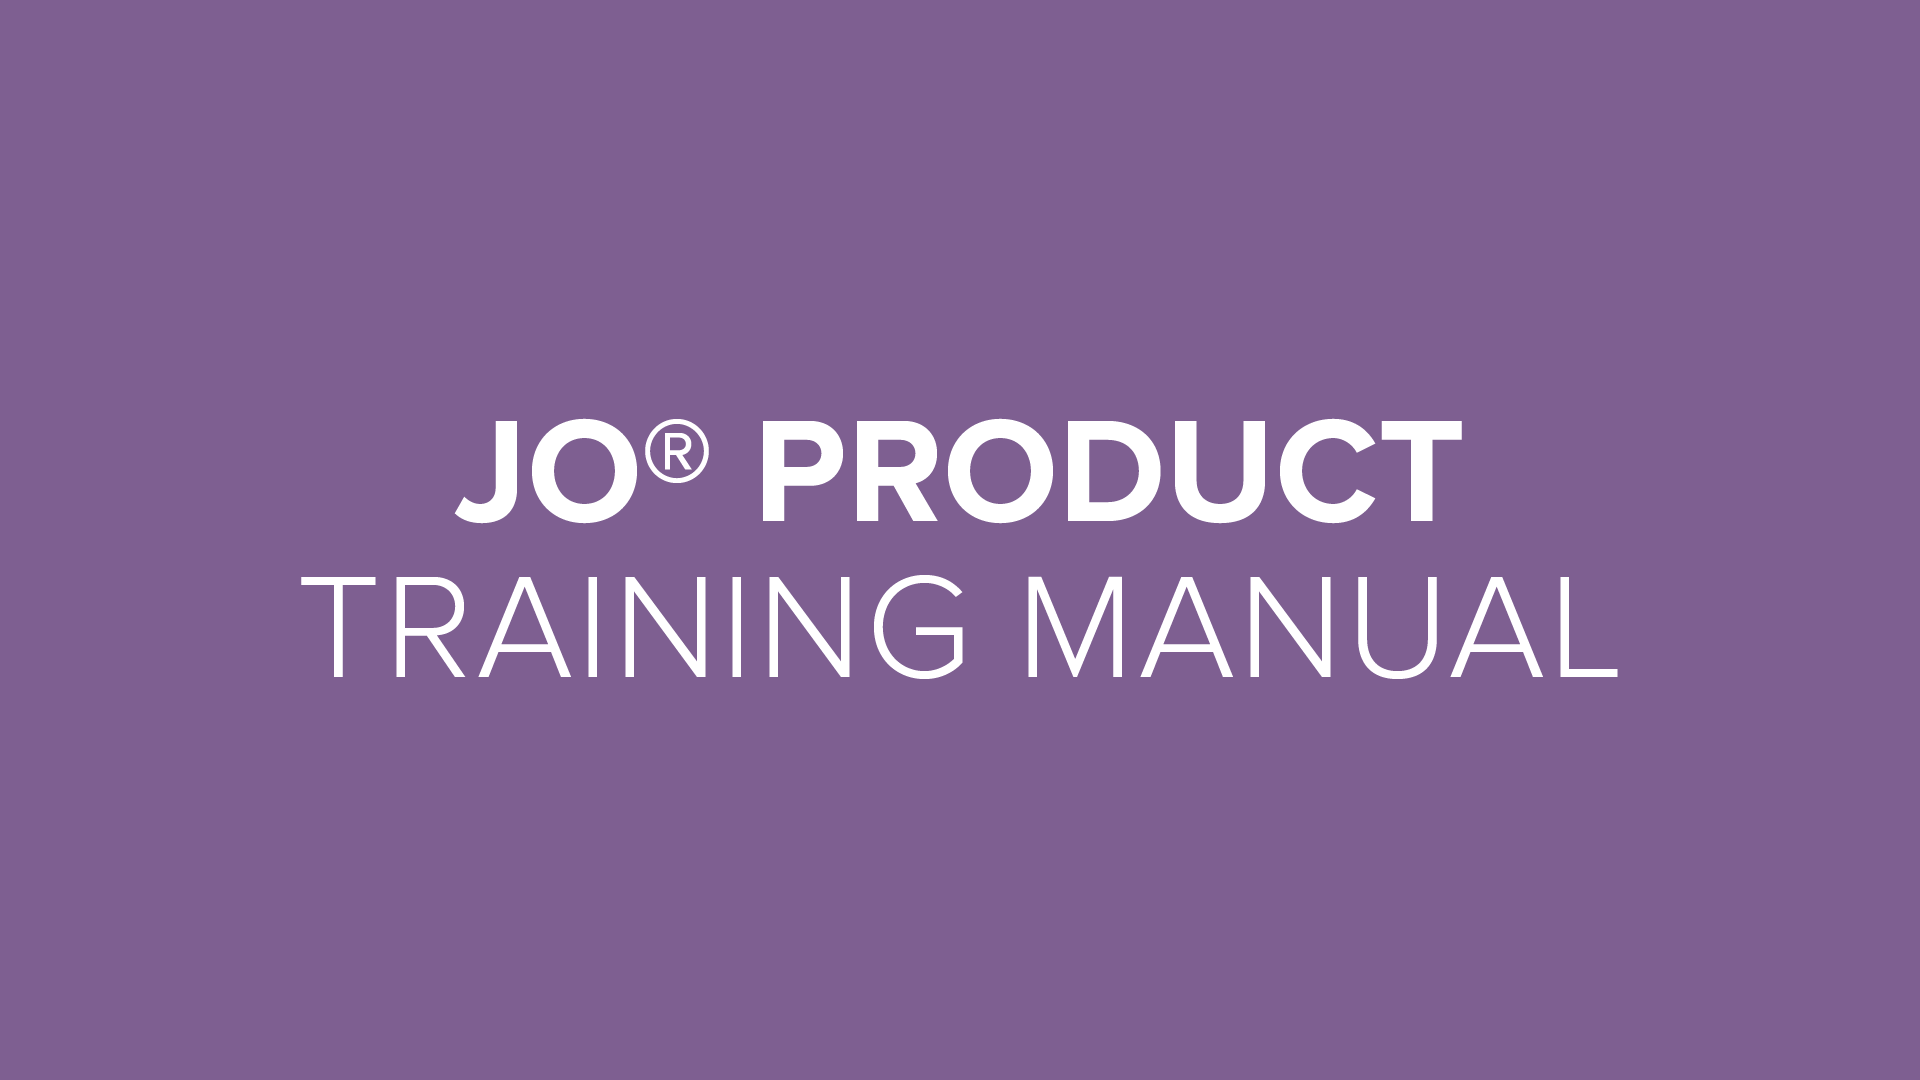 JO Category Icons (with color)_Training Manual.png